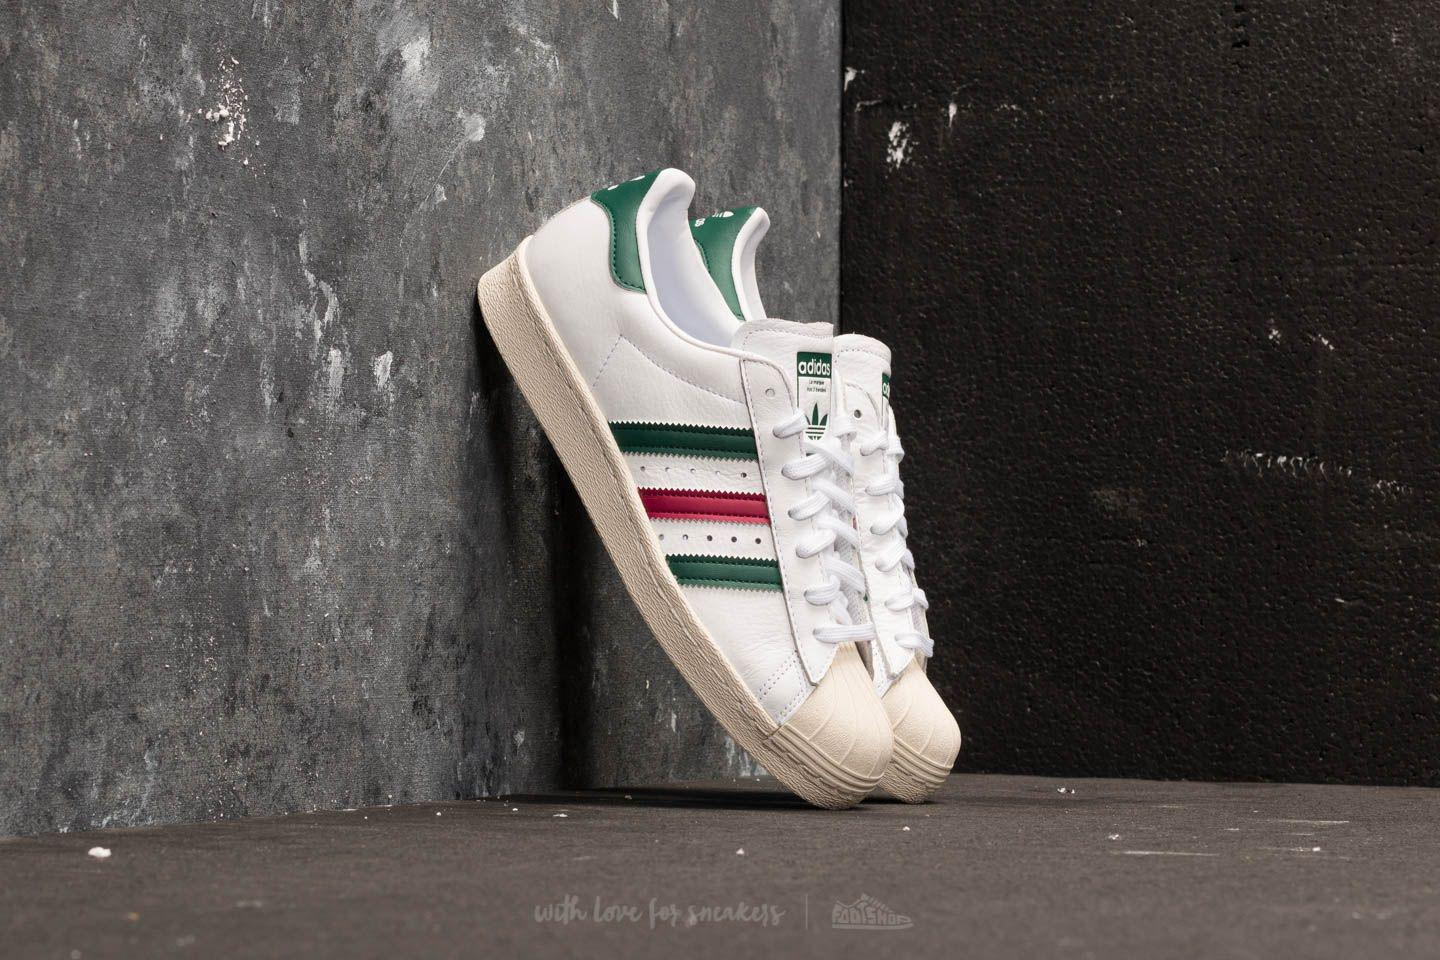 023de8d00e15 Lyst - adidas Originals Adidas Superstar 80s Ftw White  Collegiate ...